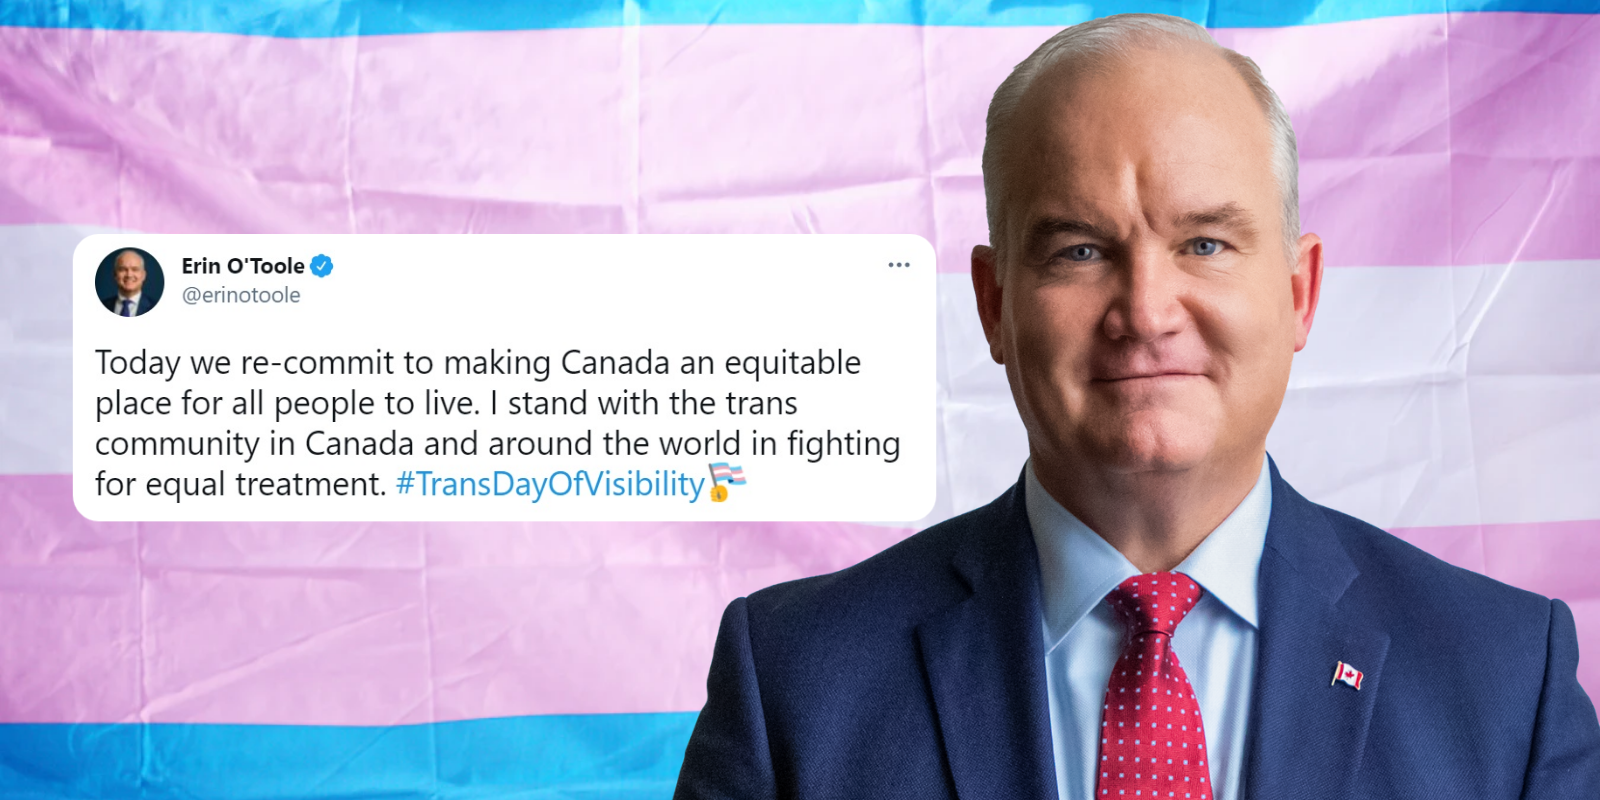 O'Toole tweets message in support of trans community for #TransDayOfVisibility